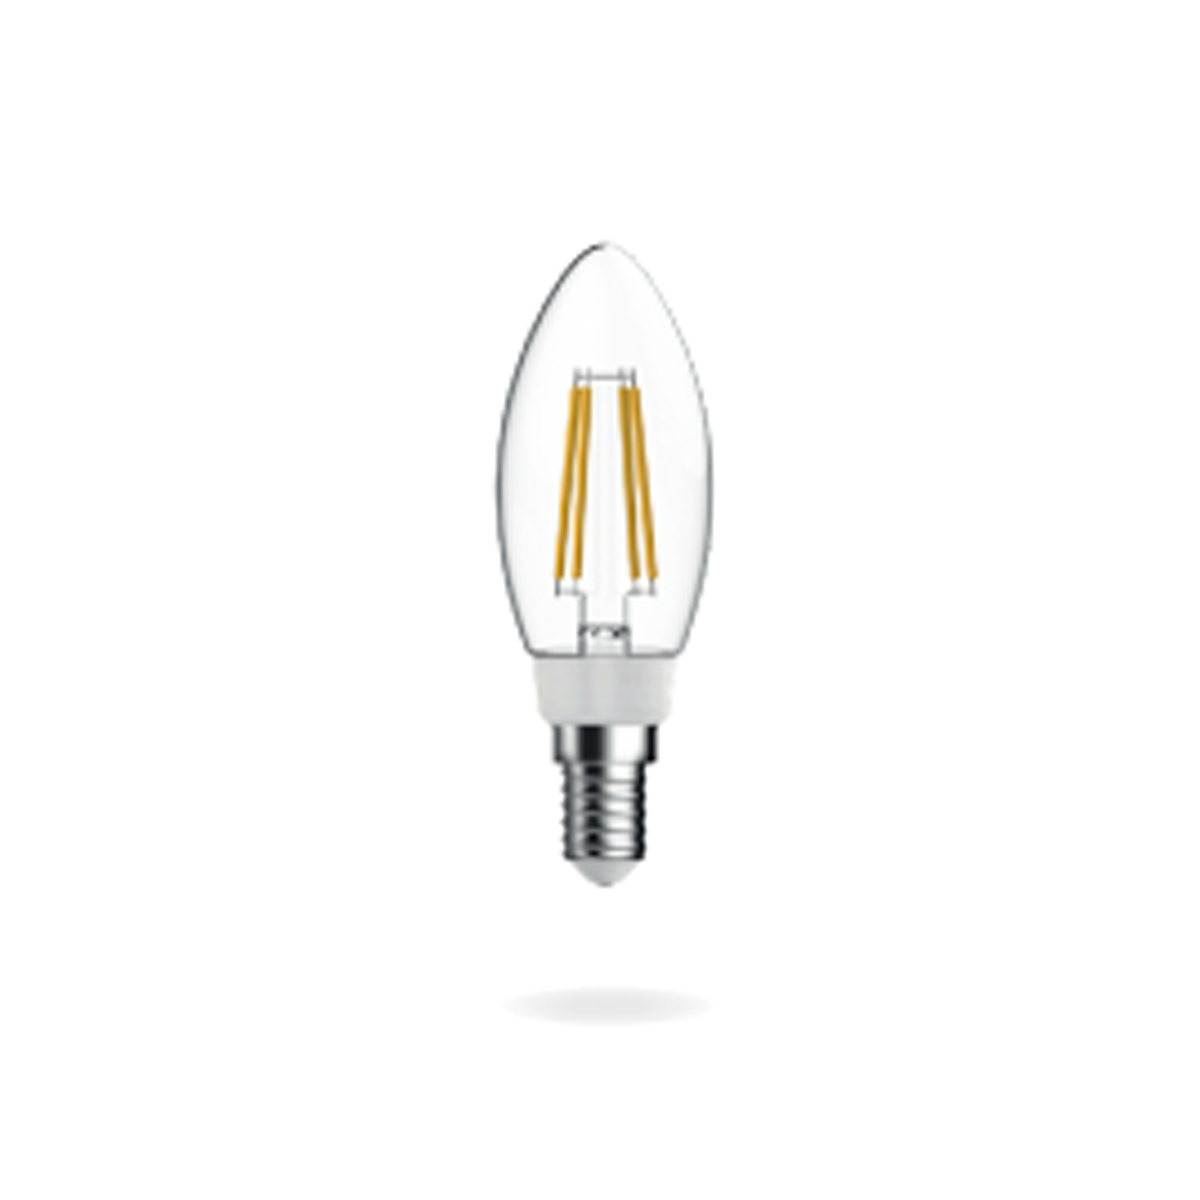 Candle Filament Bulb E14 - Cool White Dimmable.